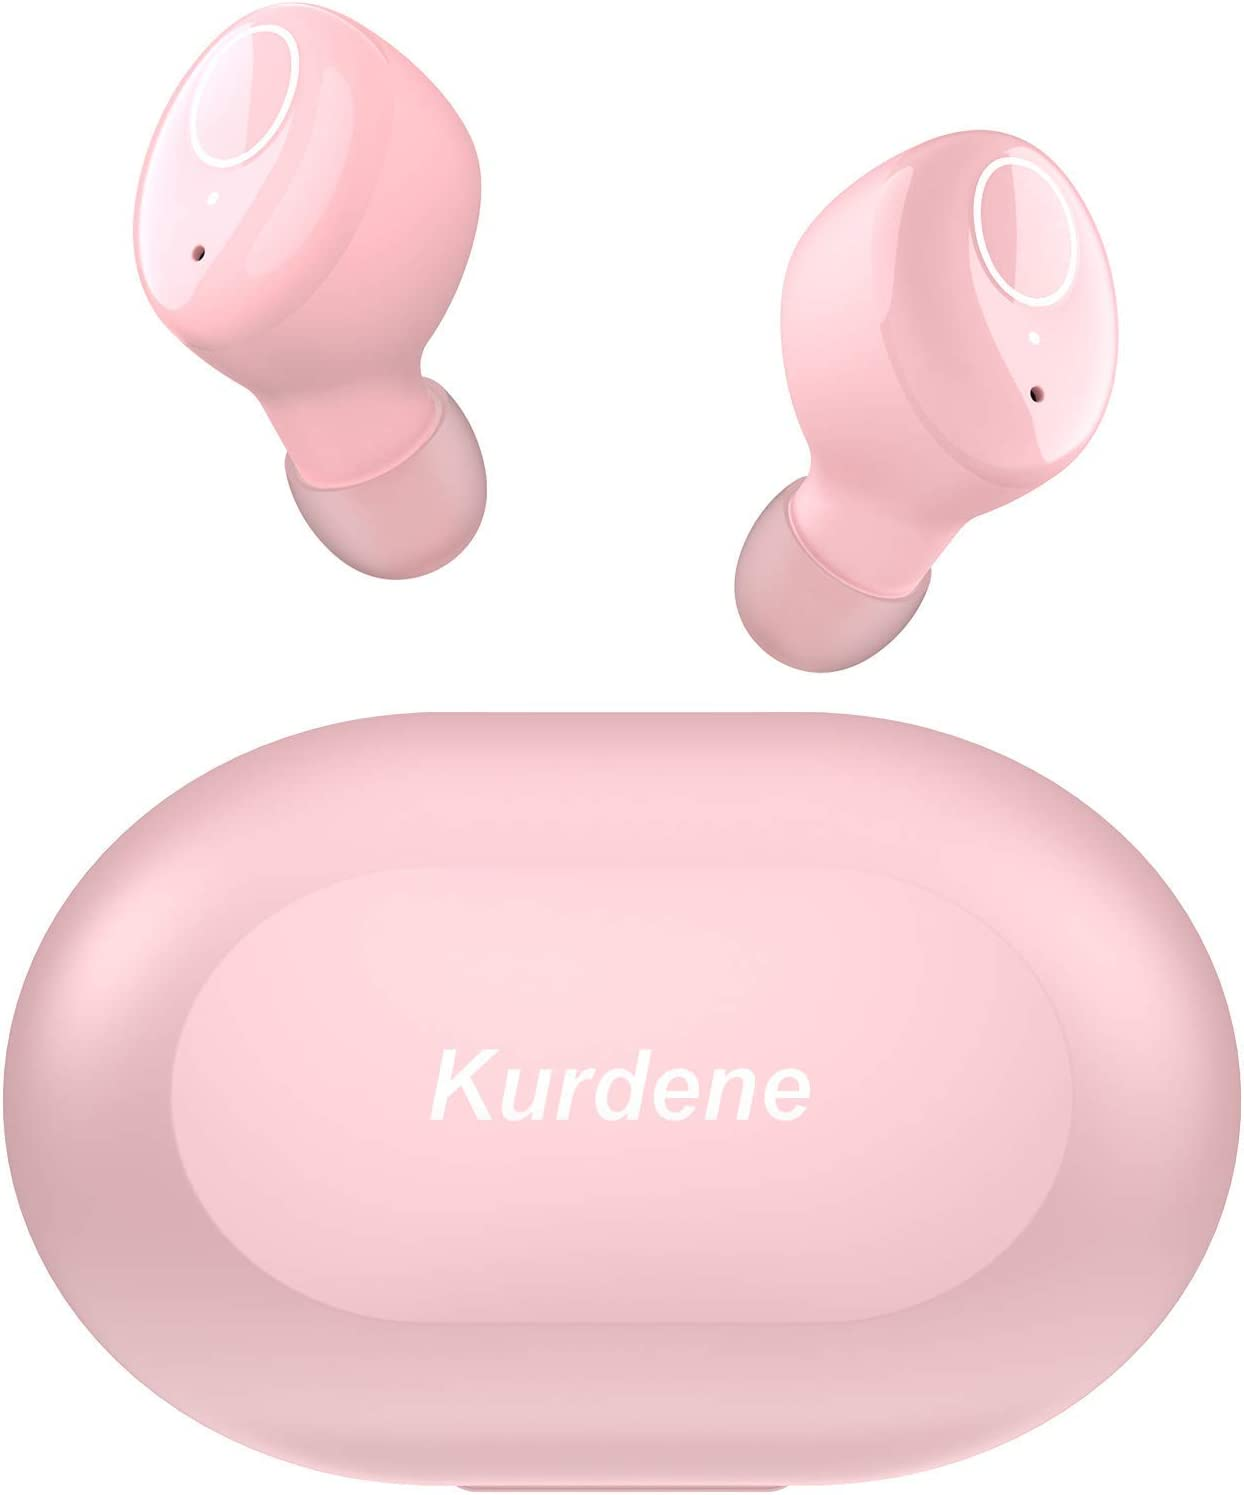 Kurdene Small Wireless Earbuds,Bluetooth Earbuds with Charging Case Bass Sounds IPX8 Waterproof Sports Headphones with Mic Touch Control 24H Playtime for iPhone/Samsung/Android -Rose Pink